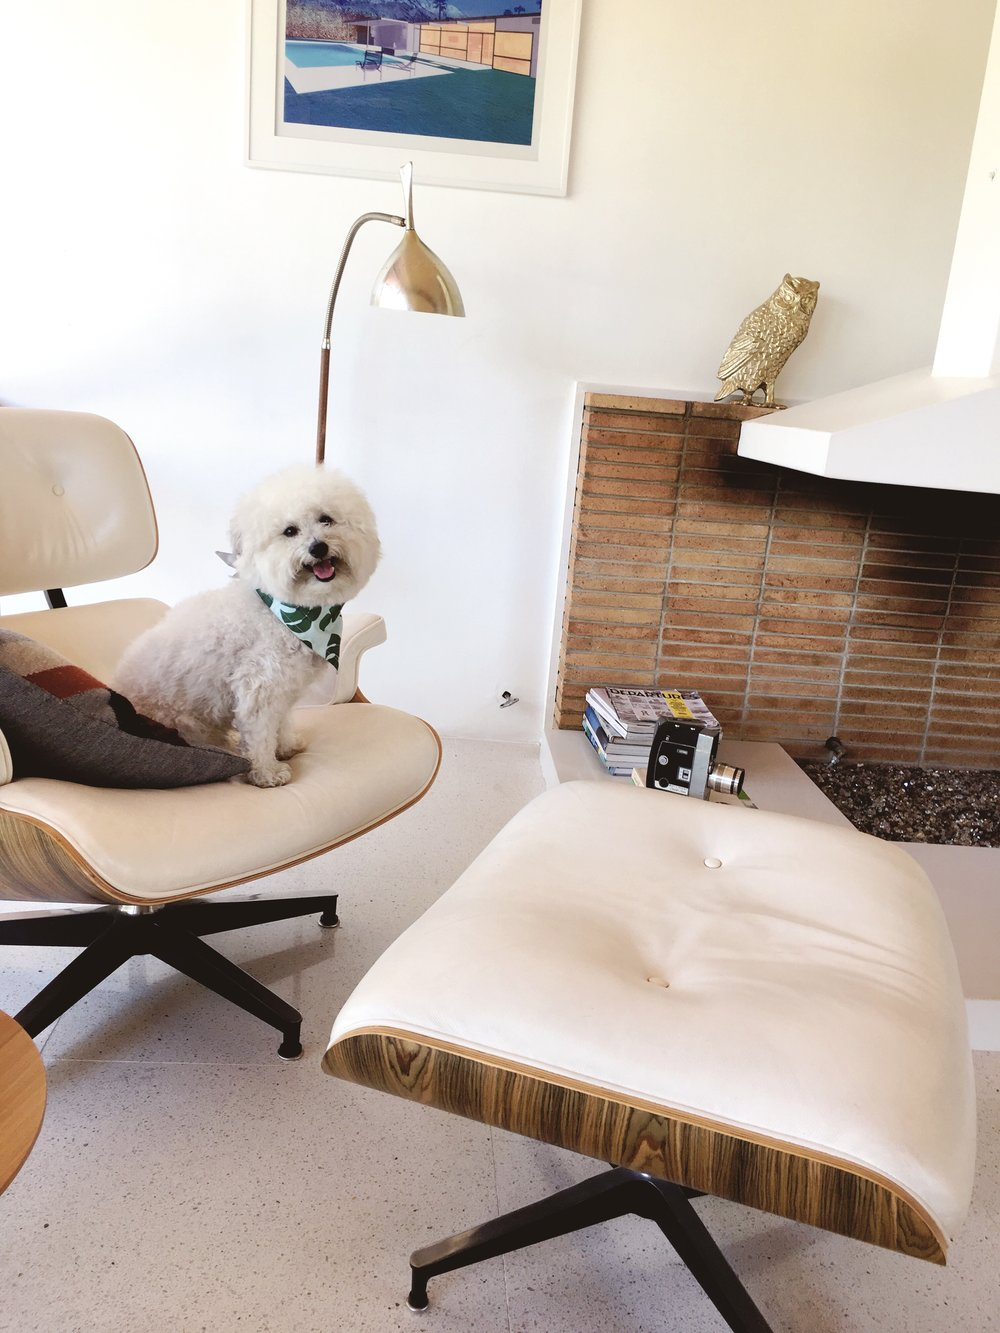 Watson at an Airbnb in an Eames chair Palm Springs, California | Watson & Walls